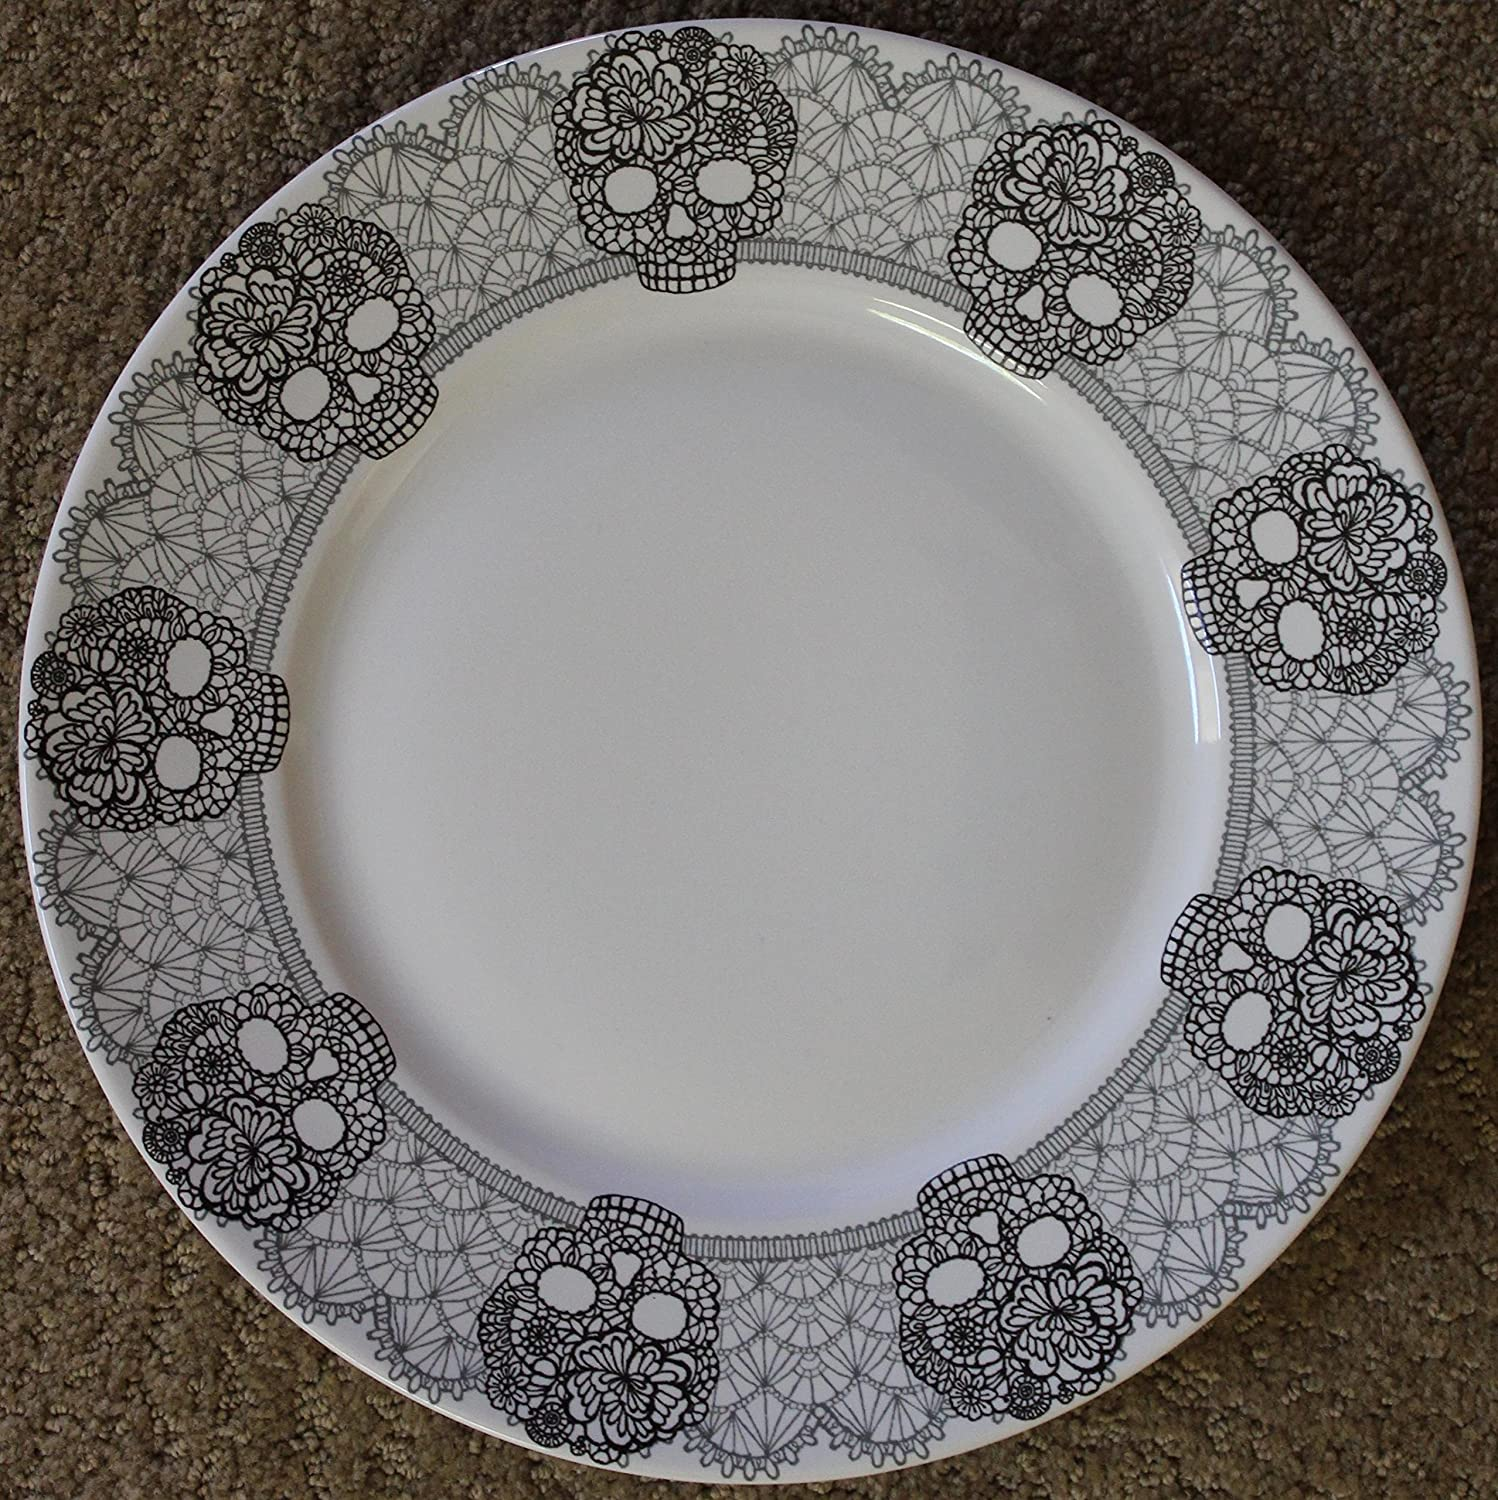 222 Fifth Halloween Skull Lace Dinner Plates - Approx.10- 3/4